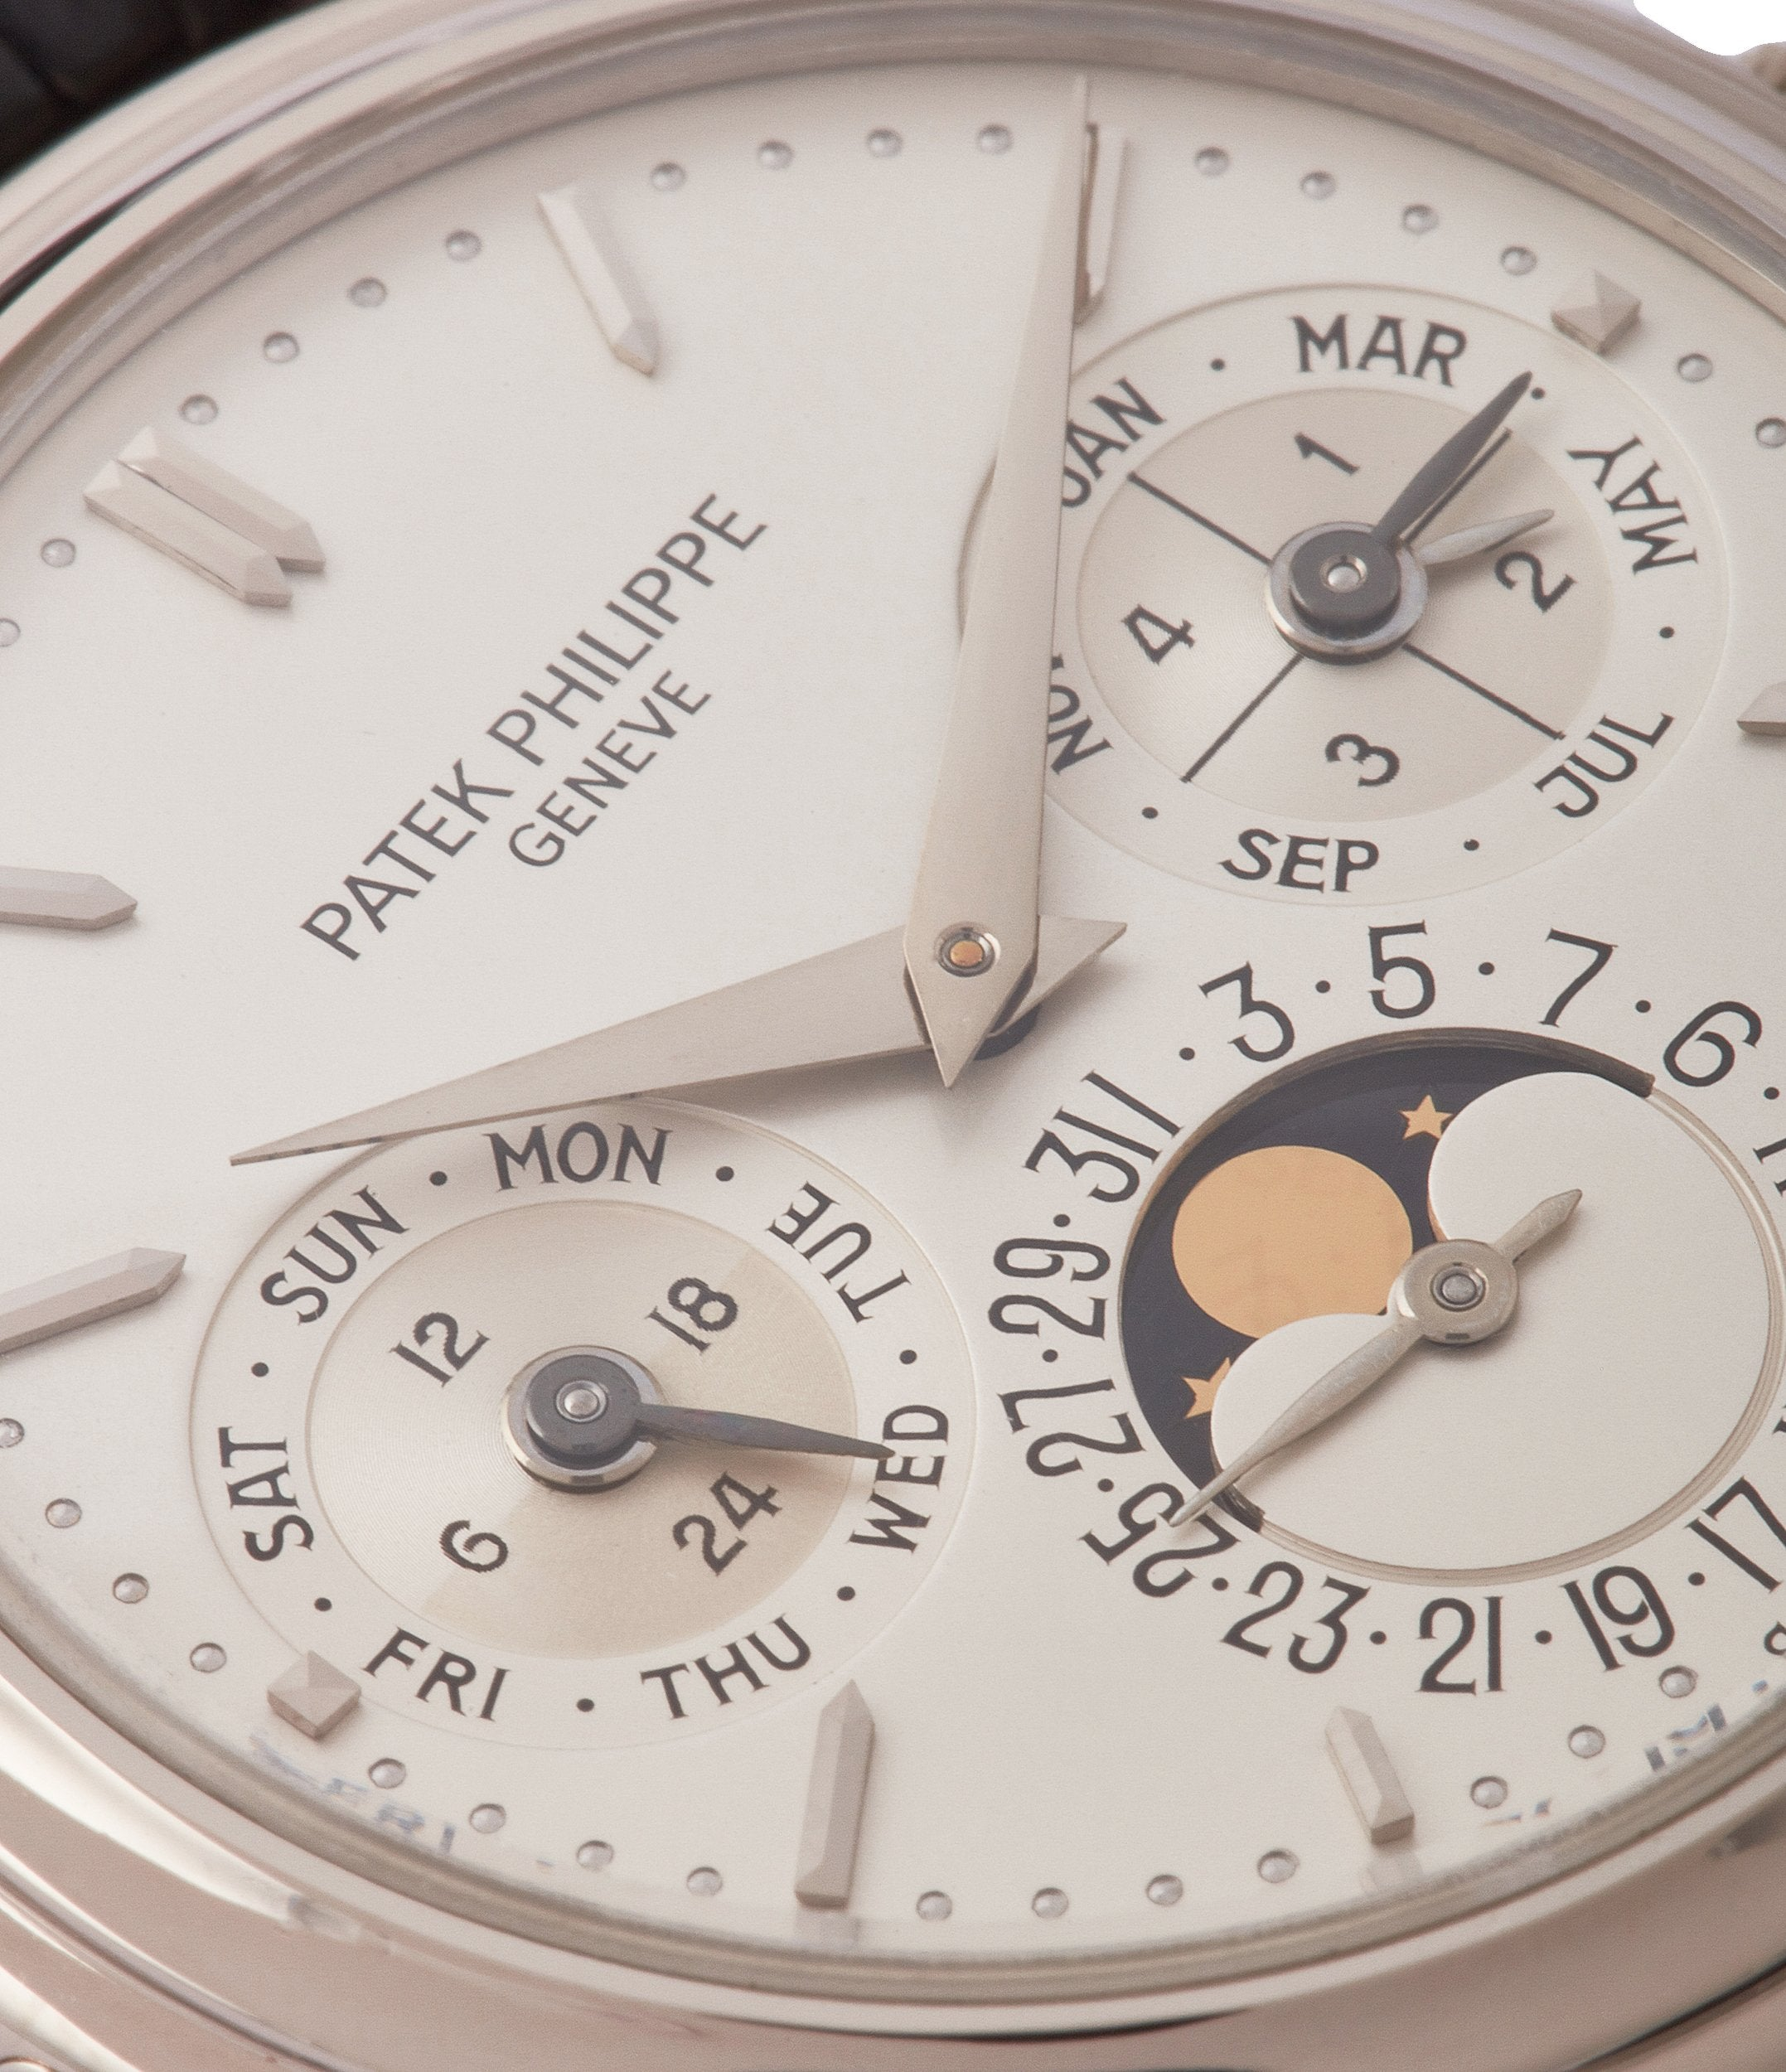 Patek Philippe 3940 third series dial macro in Transitional watches for A Collected Man London